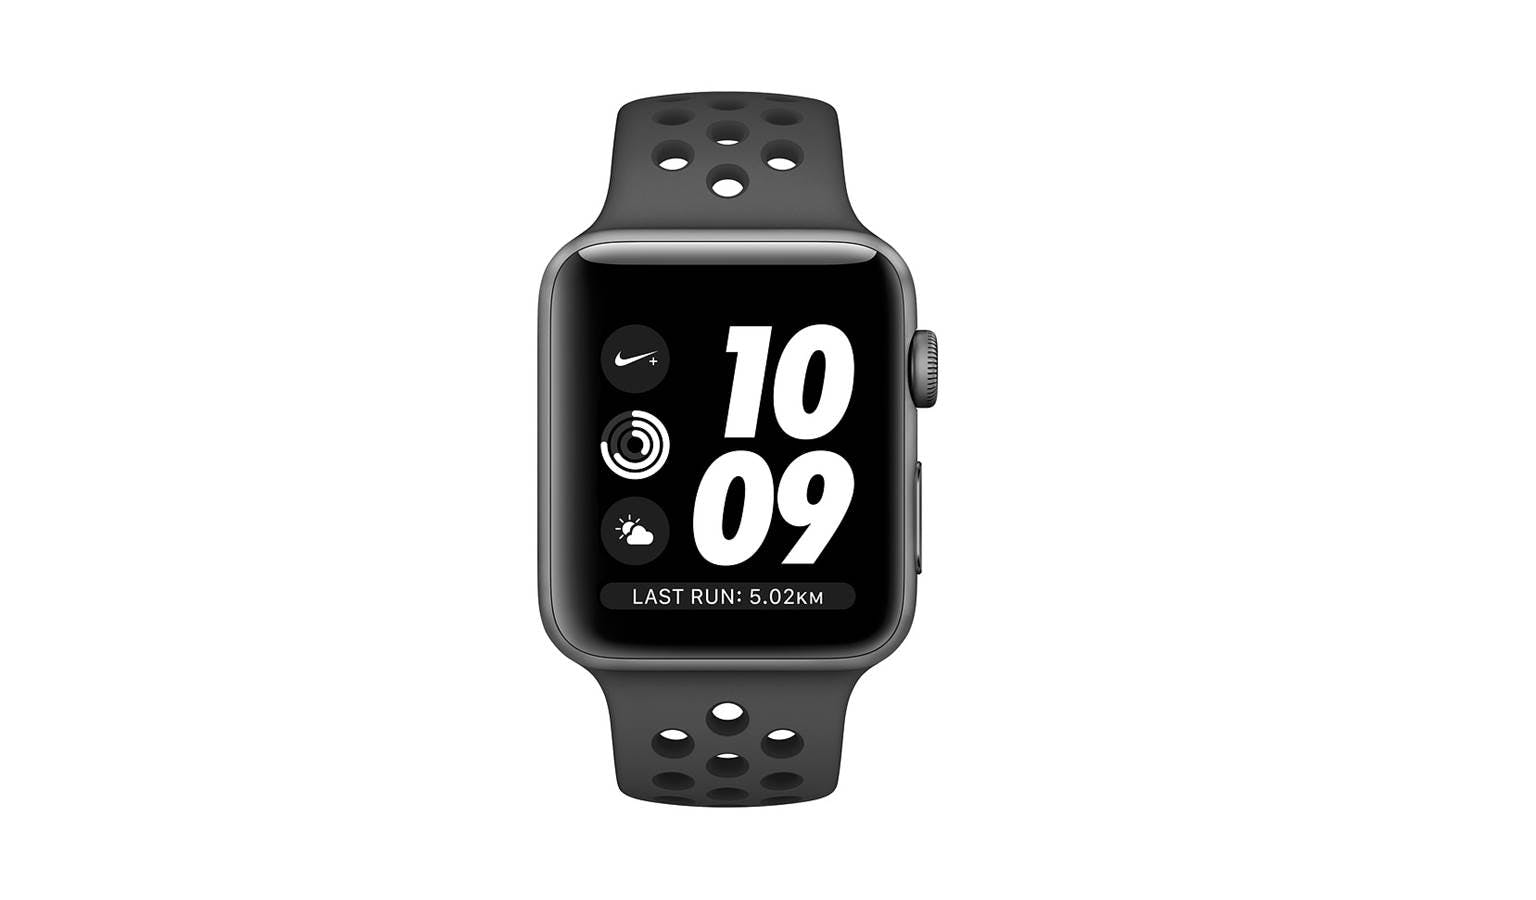 Le Watch Series 3 Nike Mtf12 Gps 38mm E Grey Aluminium Case With Anthracite Black Sport Band Harvey Norman Singapore